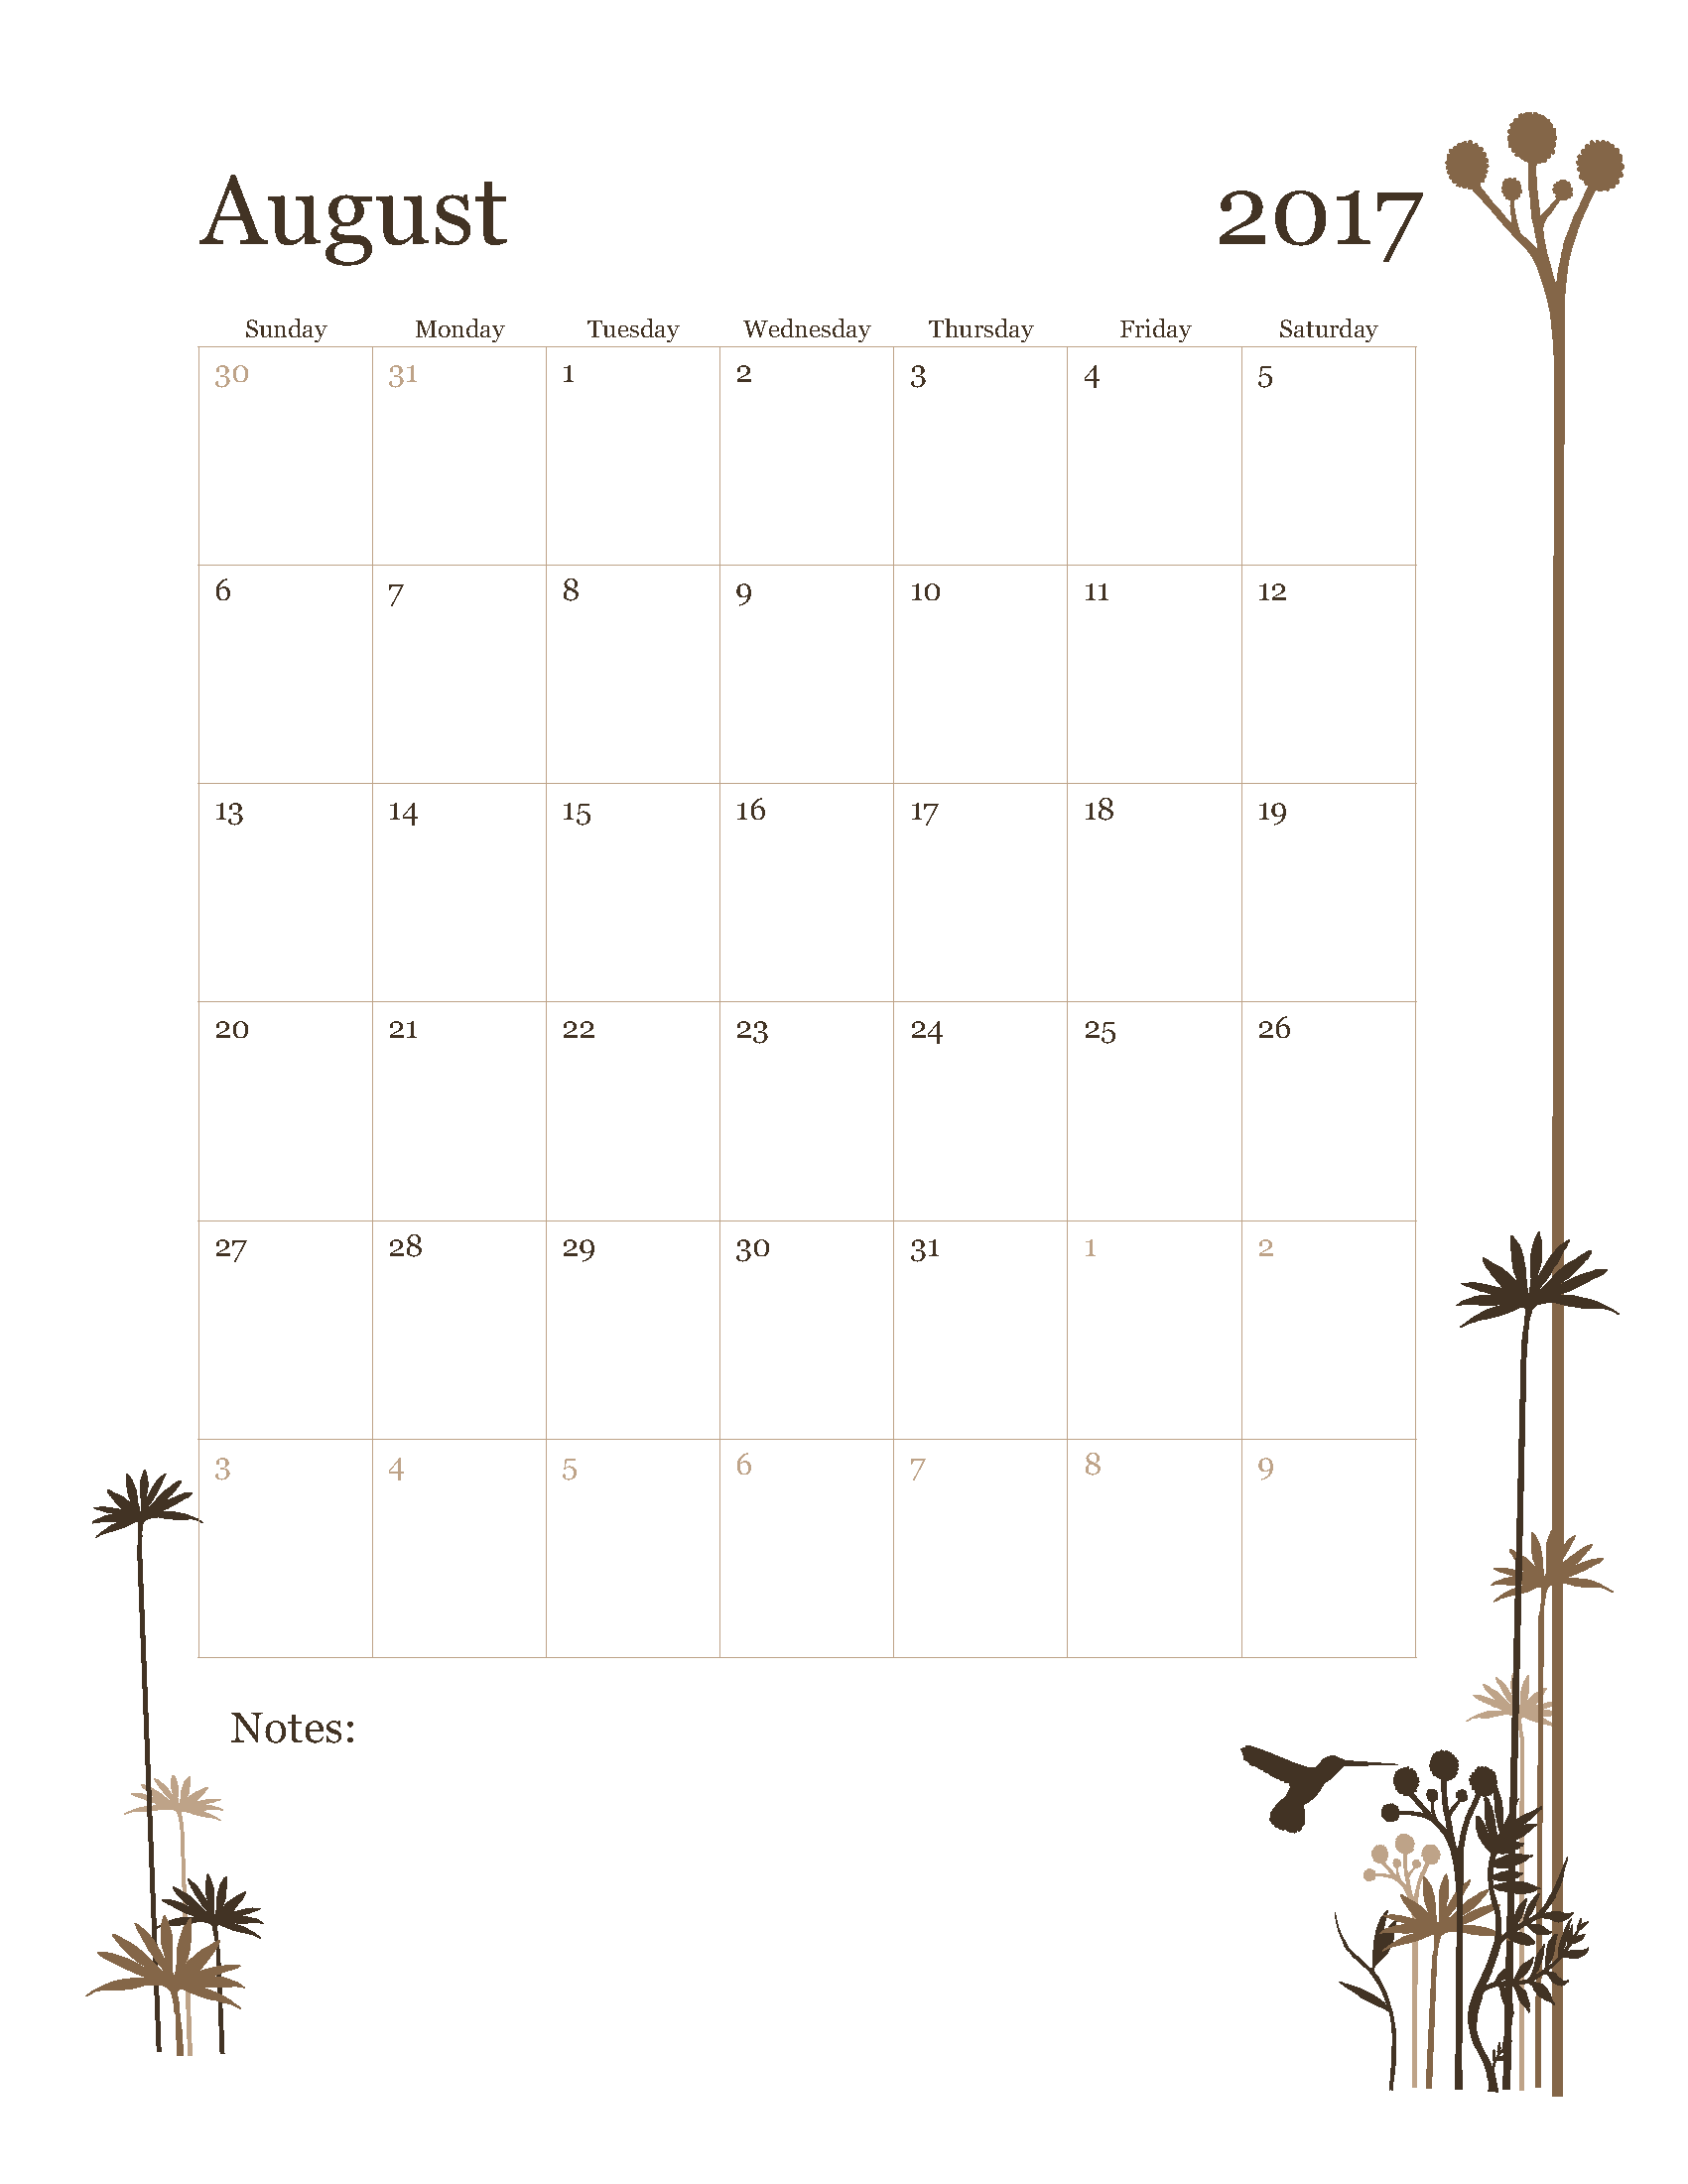 Free August 2017 Calendar Template Printable Start on Sunday - HummingBird design